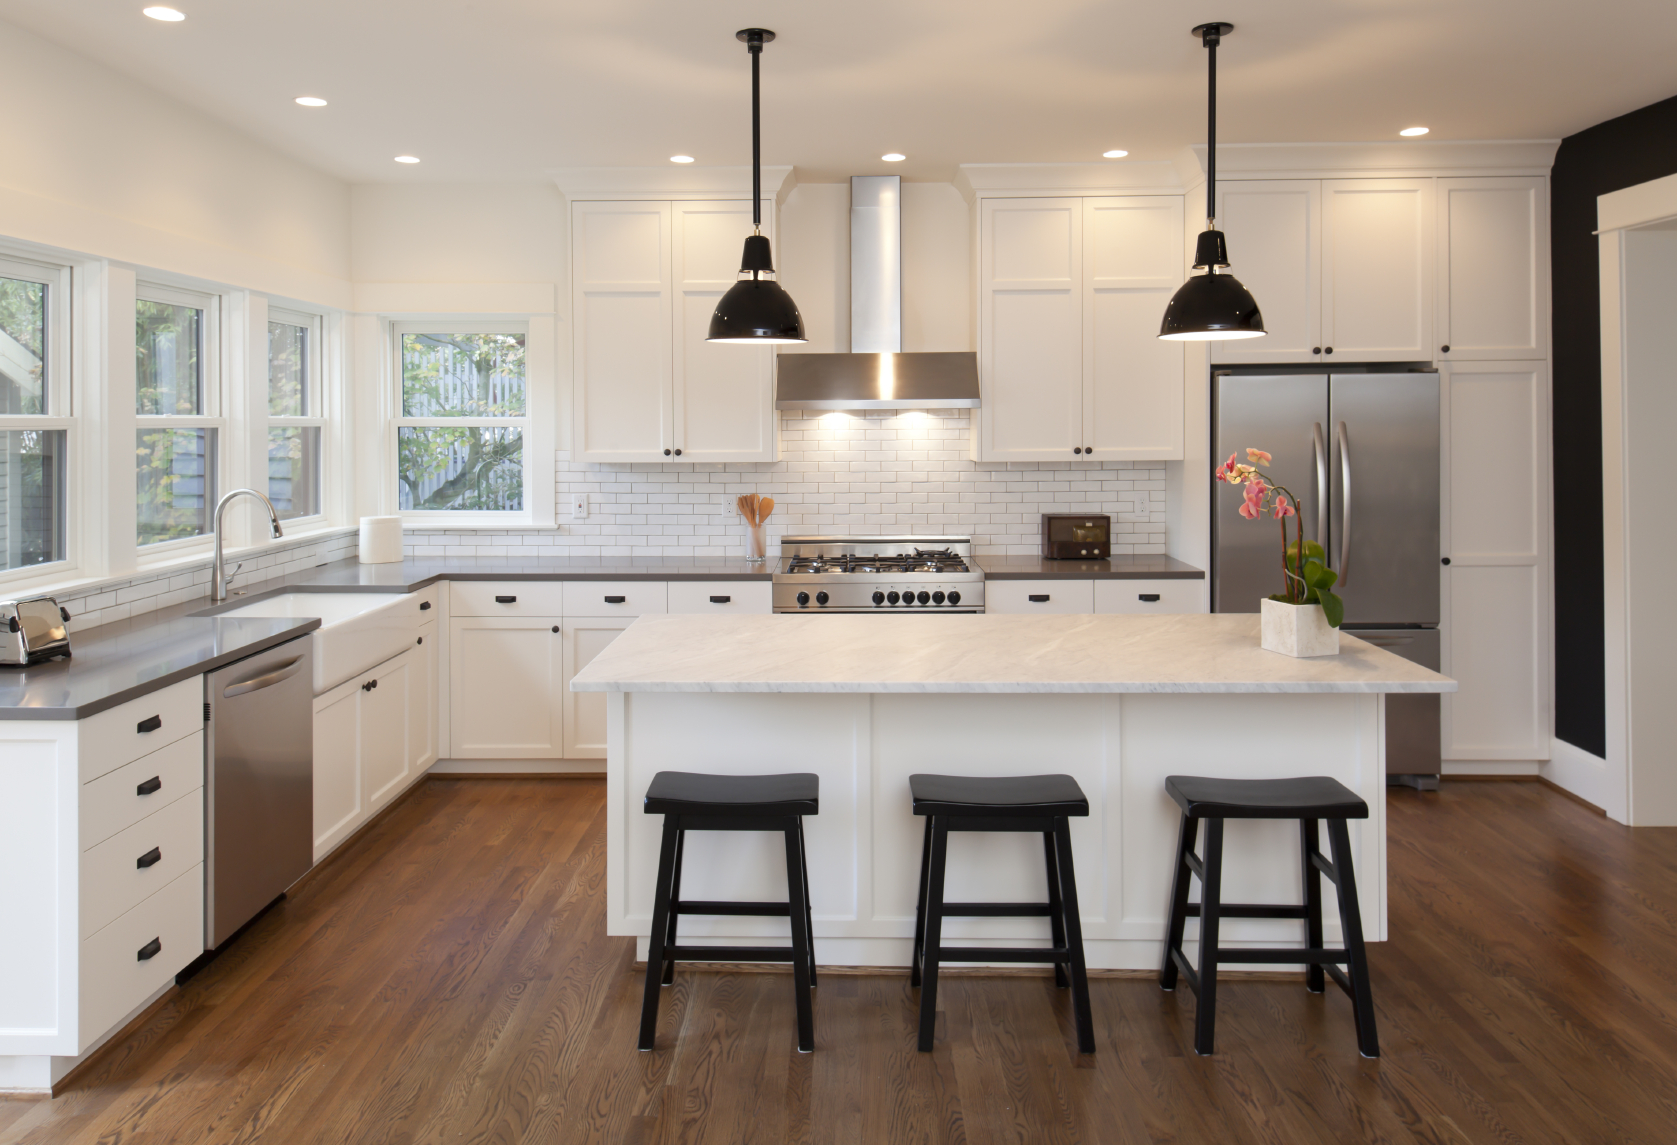 Kitchen Renovation The Dos And Donts Of Kitchen Remodeling Huffpost